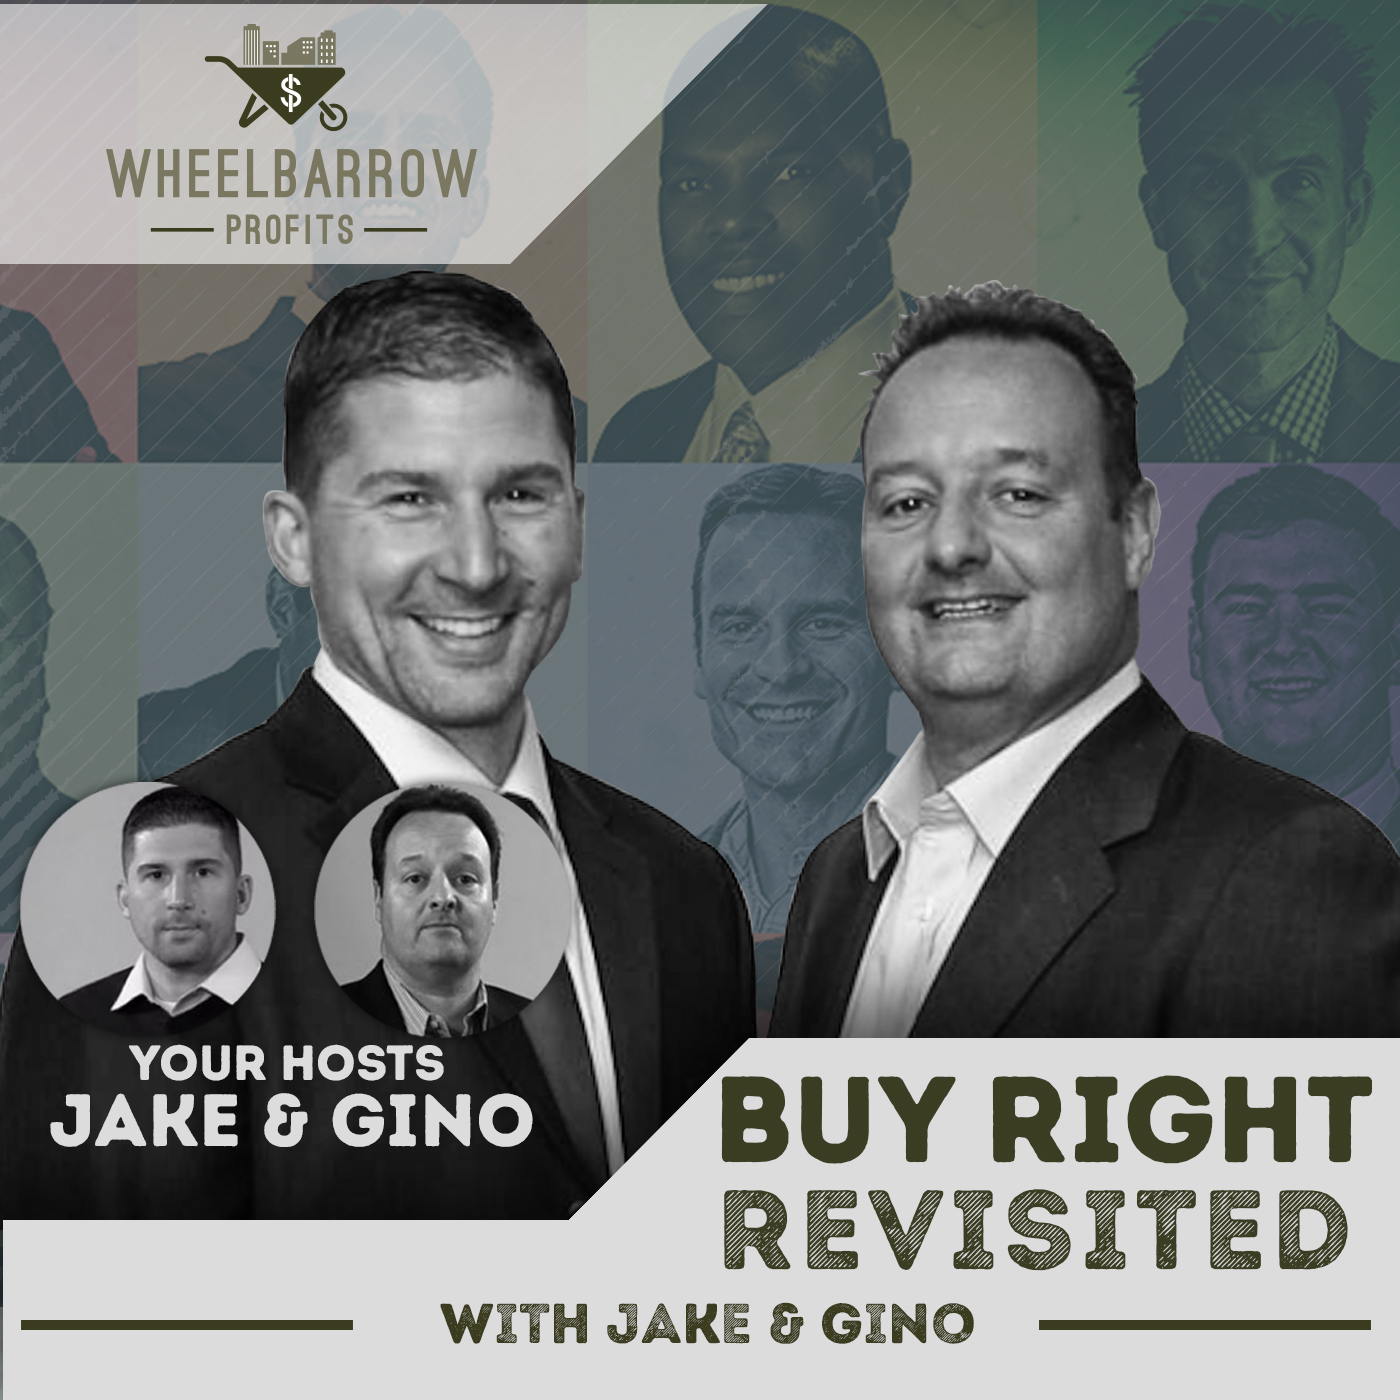 Artwork for Buy Right Revisited with Jake & Gino